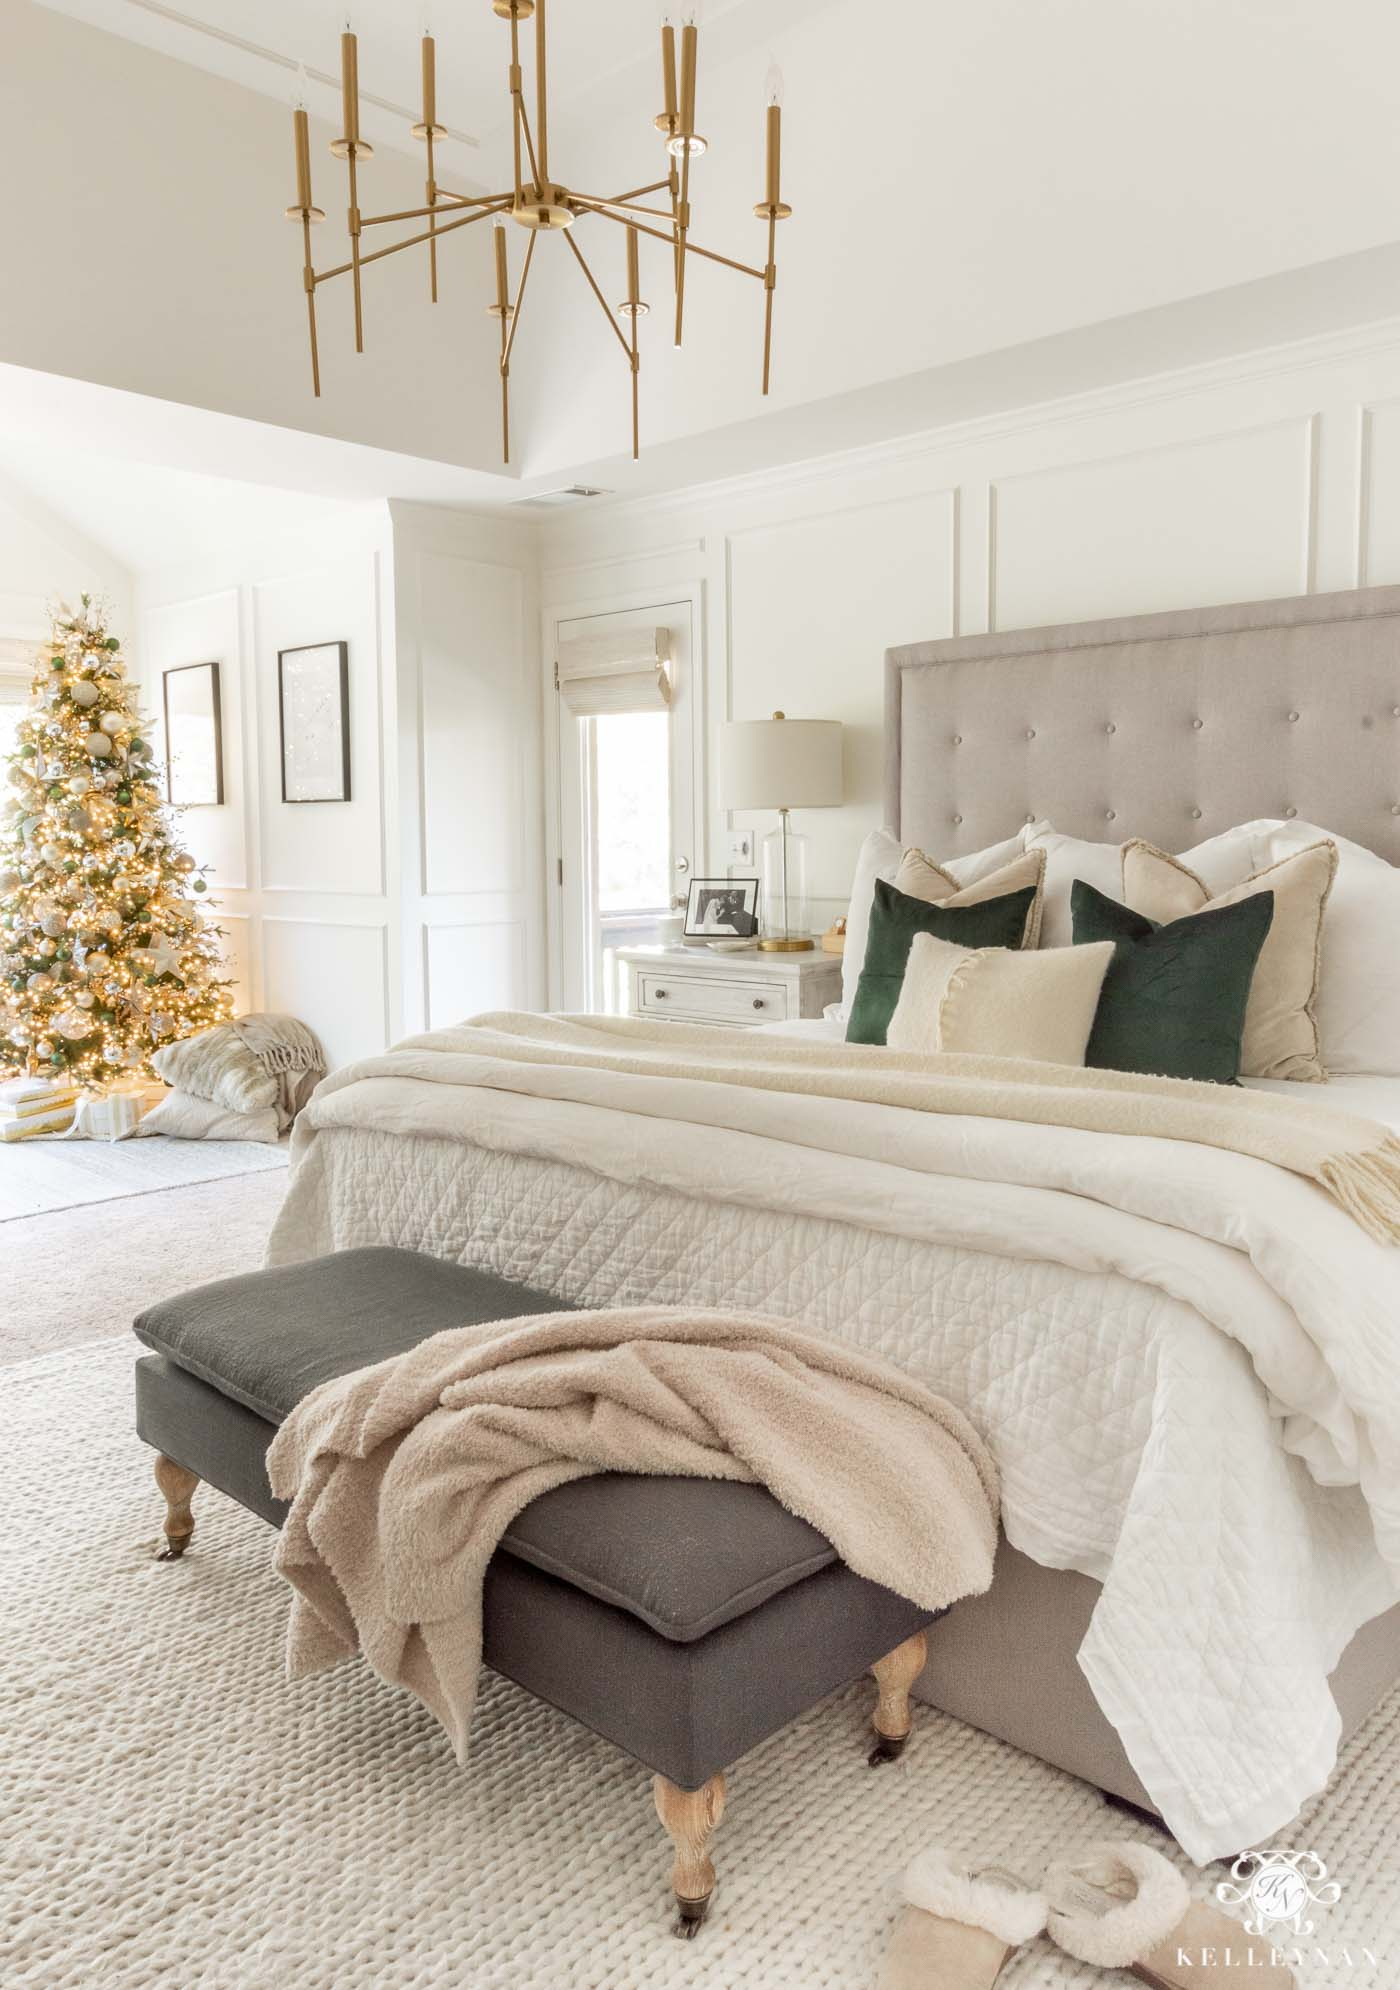 Green and white christmas decor in the master bedroom